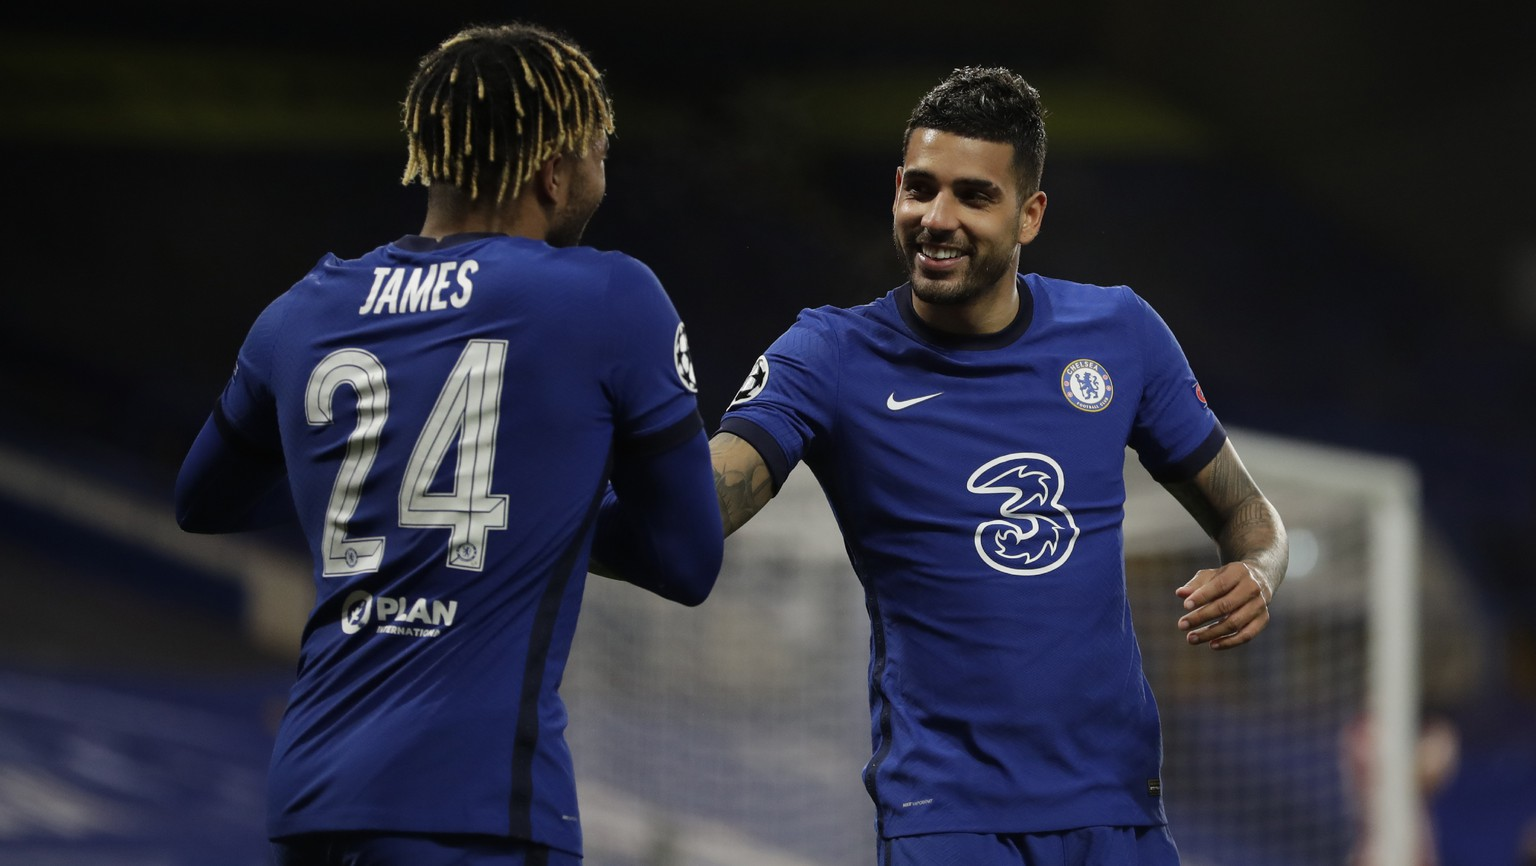 Chelsea's Emerson Palmieri, right, celebrates after scoring his side's second goal during the Champions League, round of 16, second leg soccer match between Chelsea and Atletico Madrid at the Stamford Bridge stadium, London, Wednesday, March 17, 2021. (AP Photo/Matt Dunham)